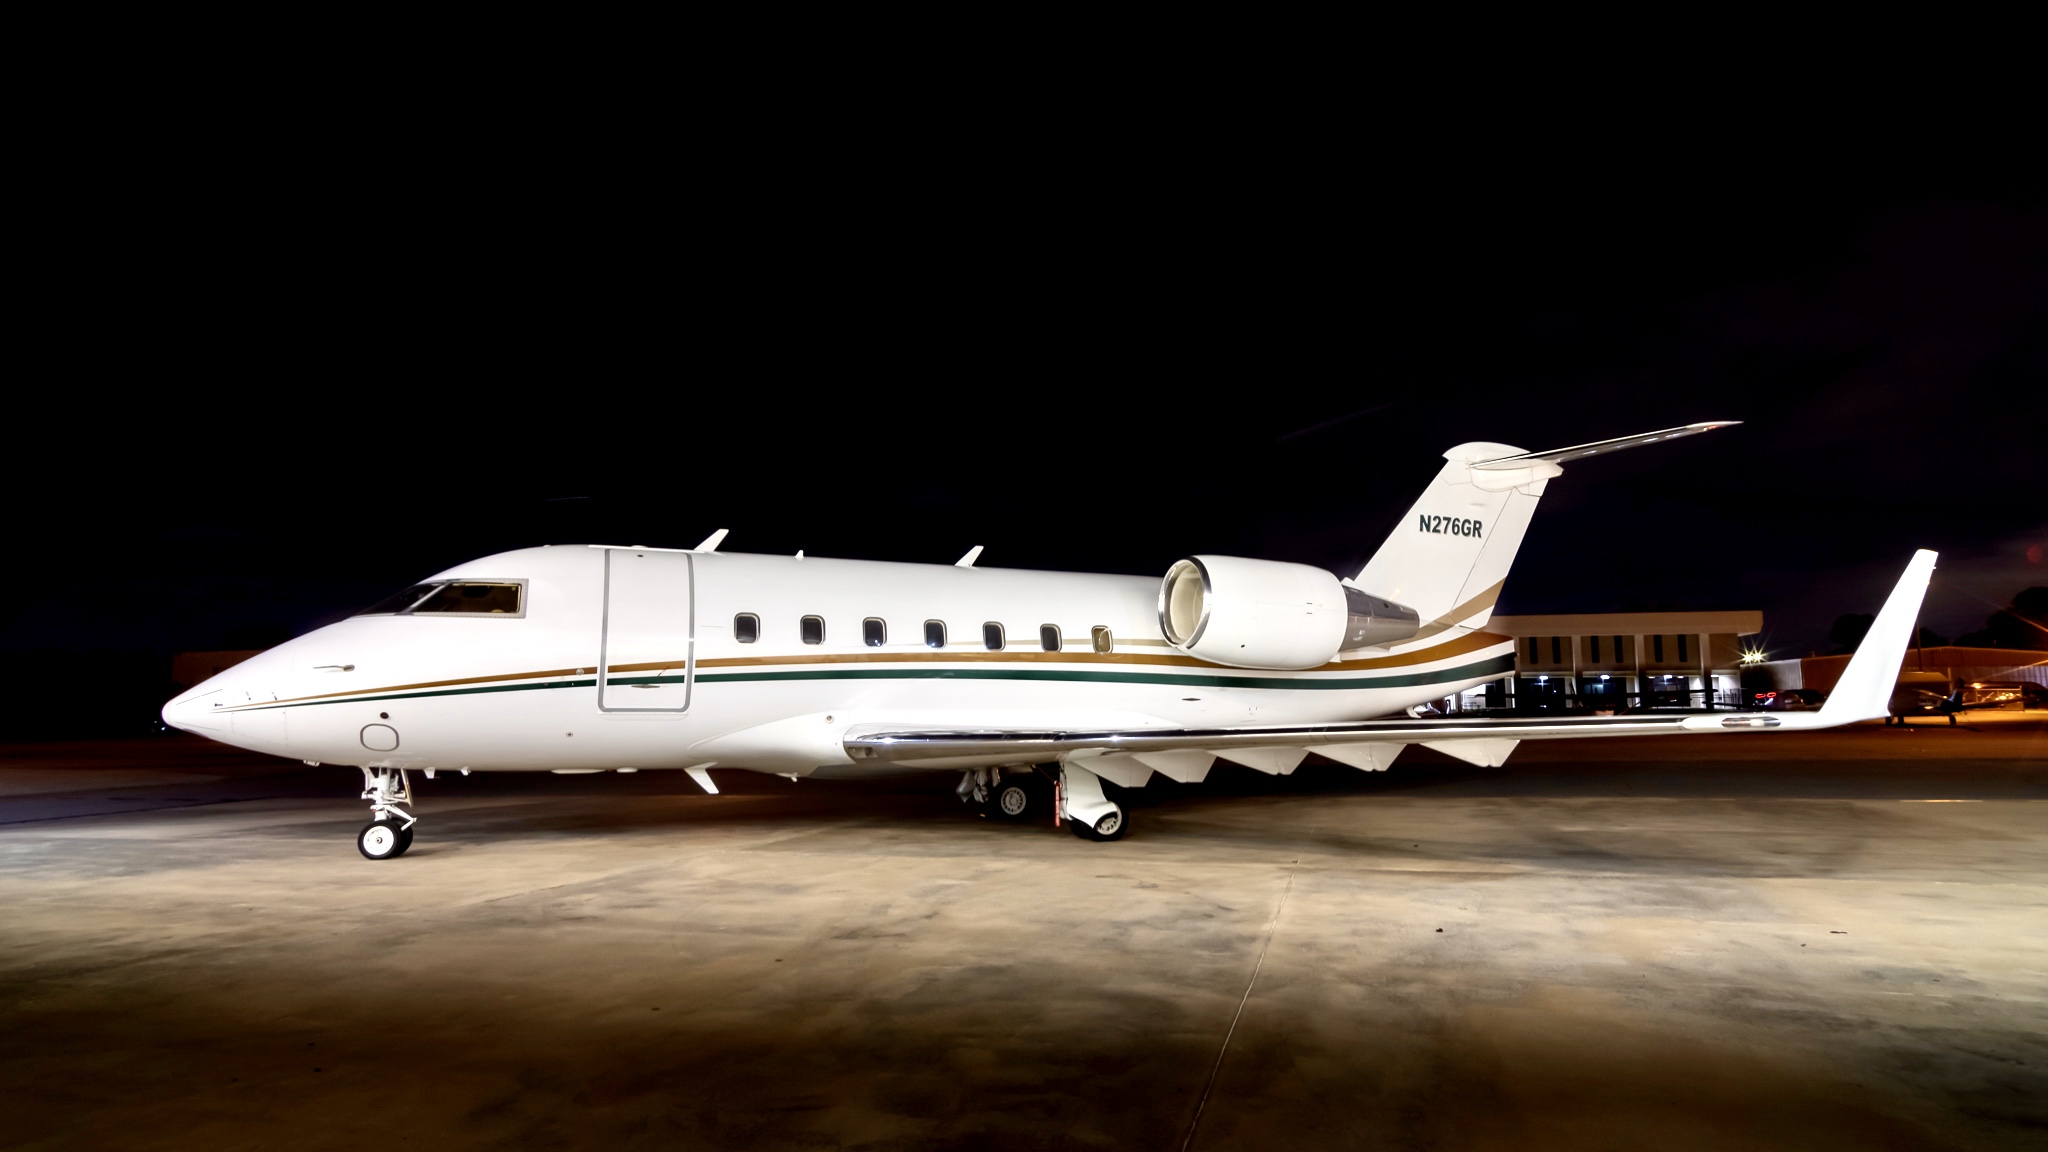 Aircraft Listing - Challenger 601-3R listed for sale